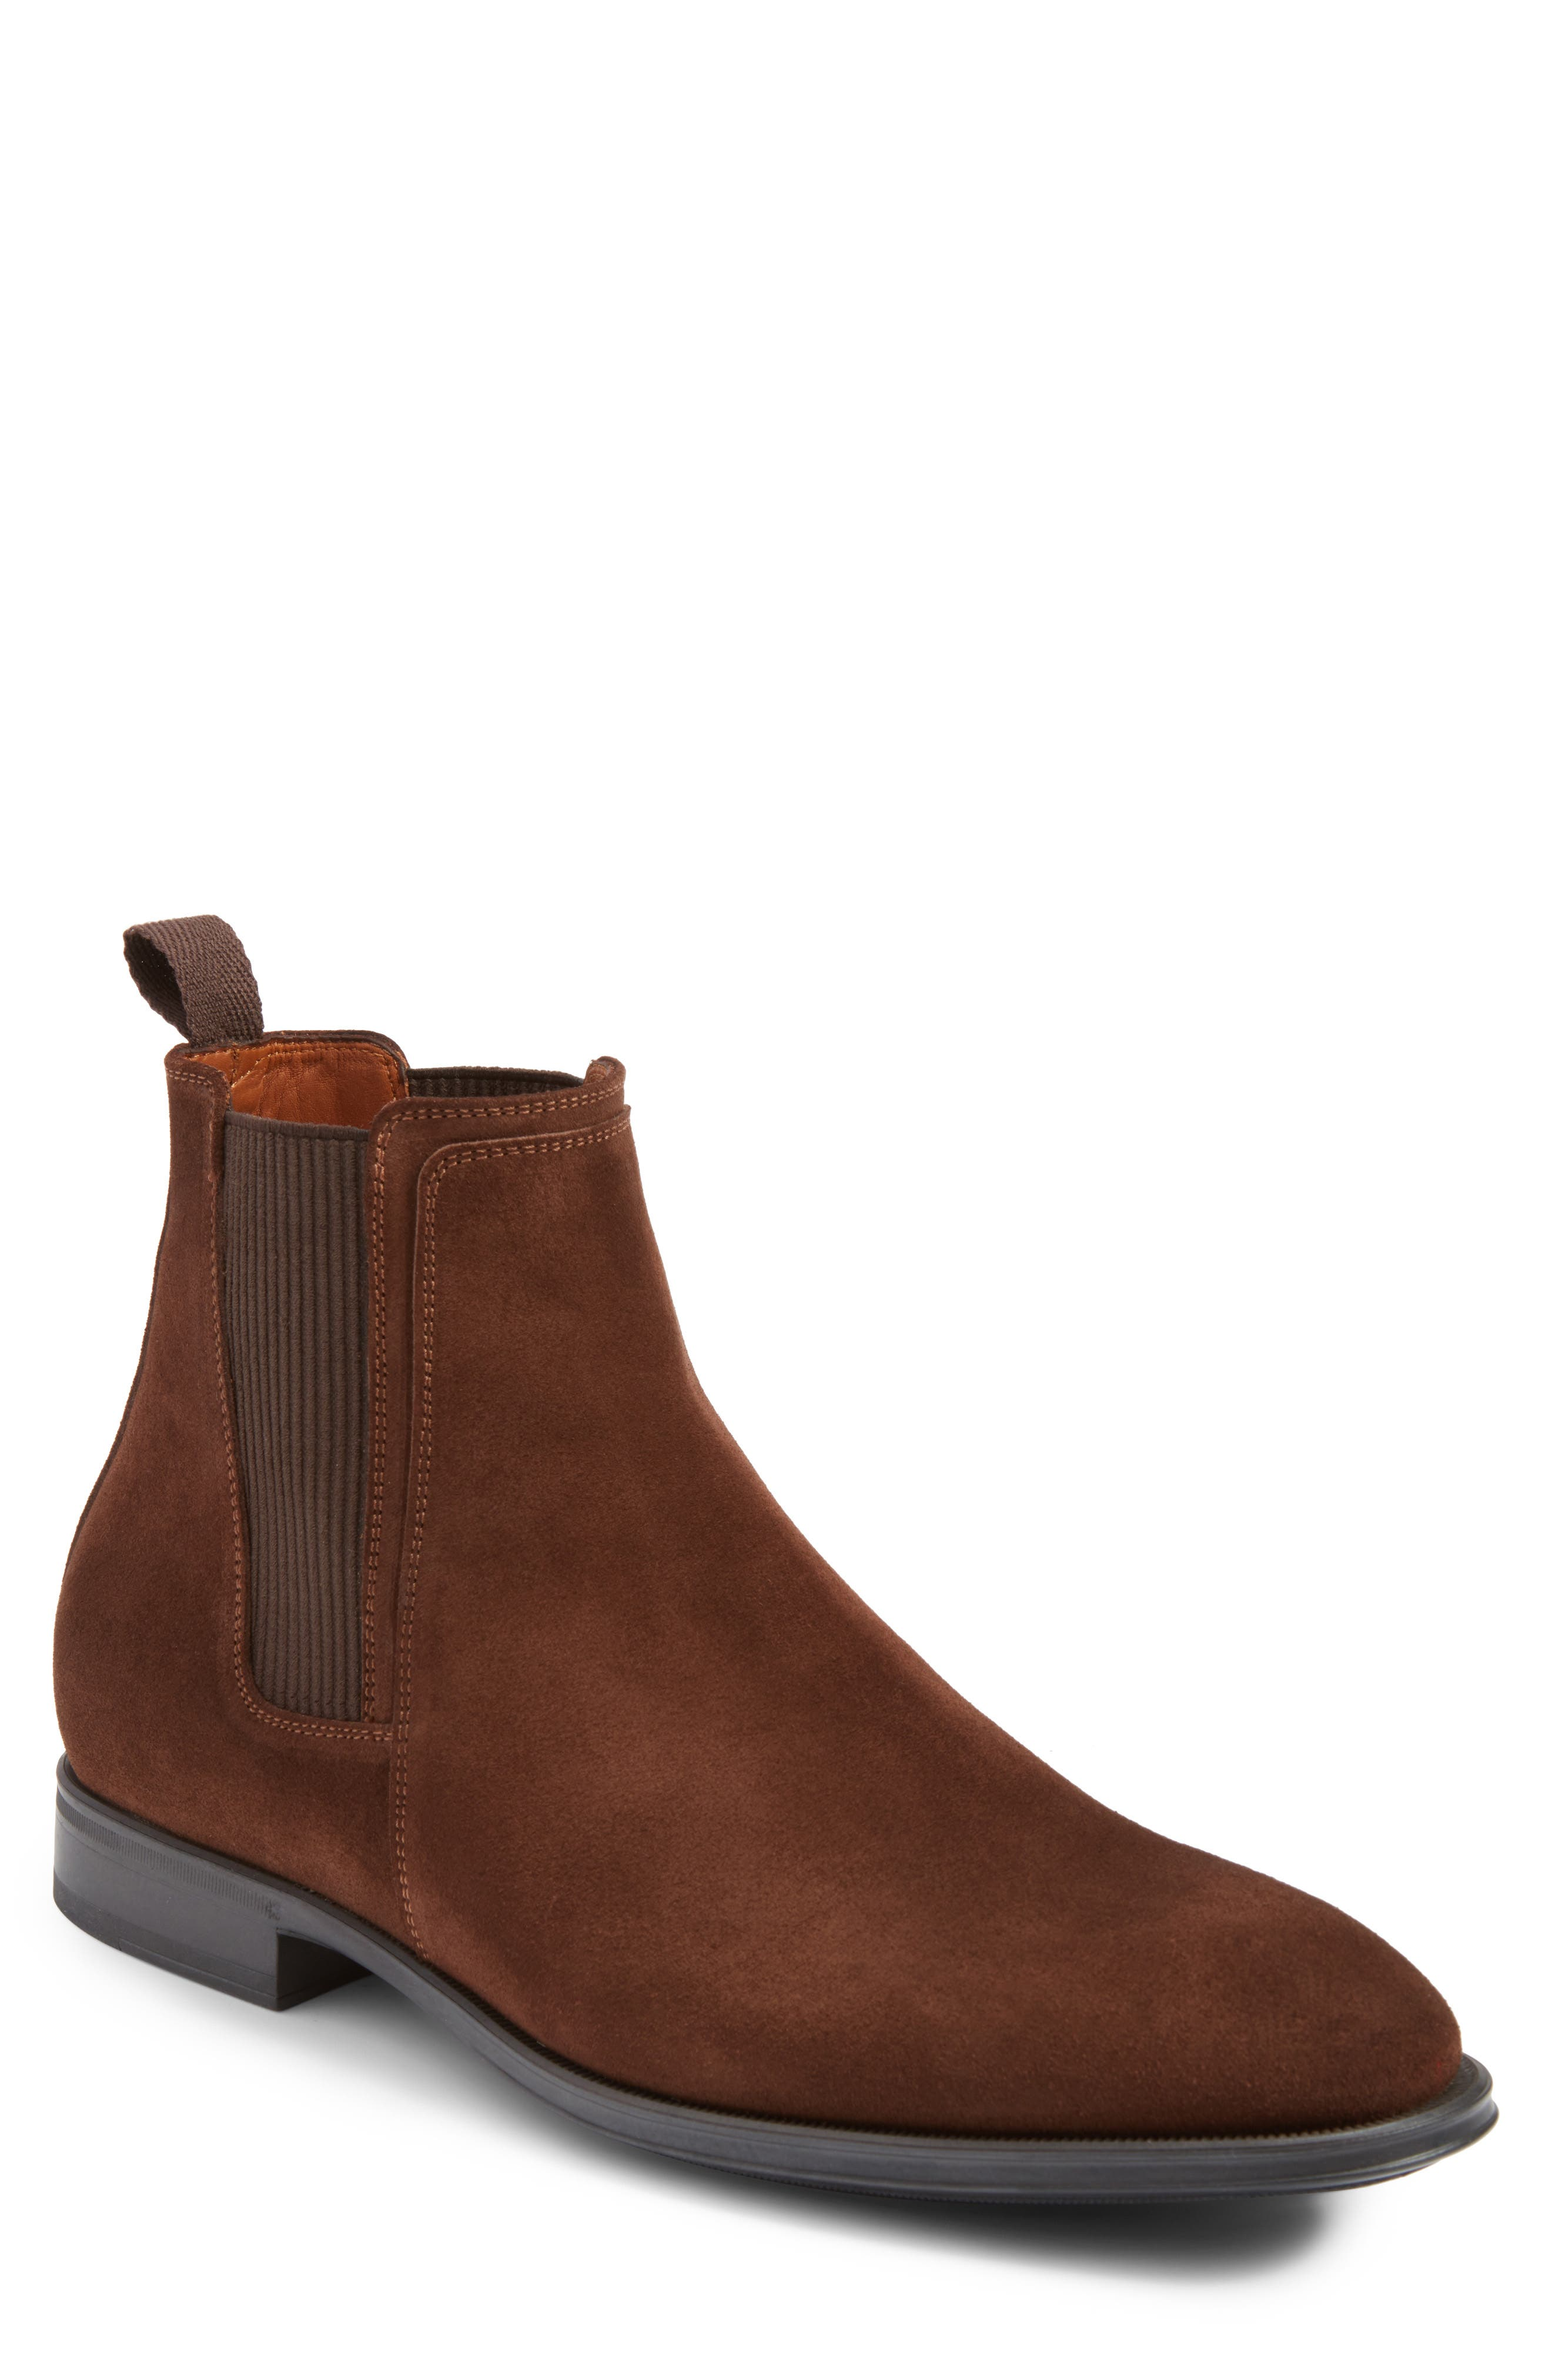 Aquatalia Damon Chelsea Boot (Men)